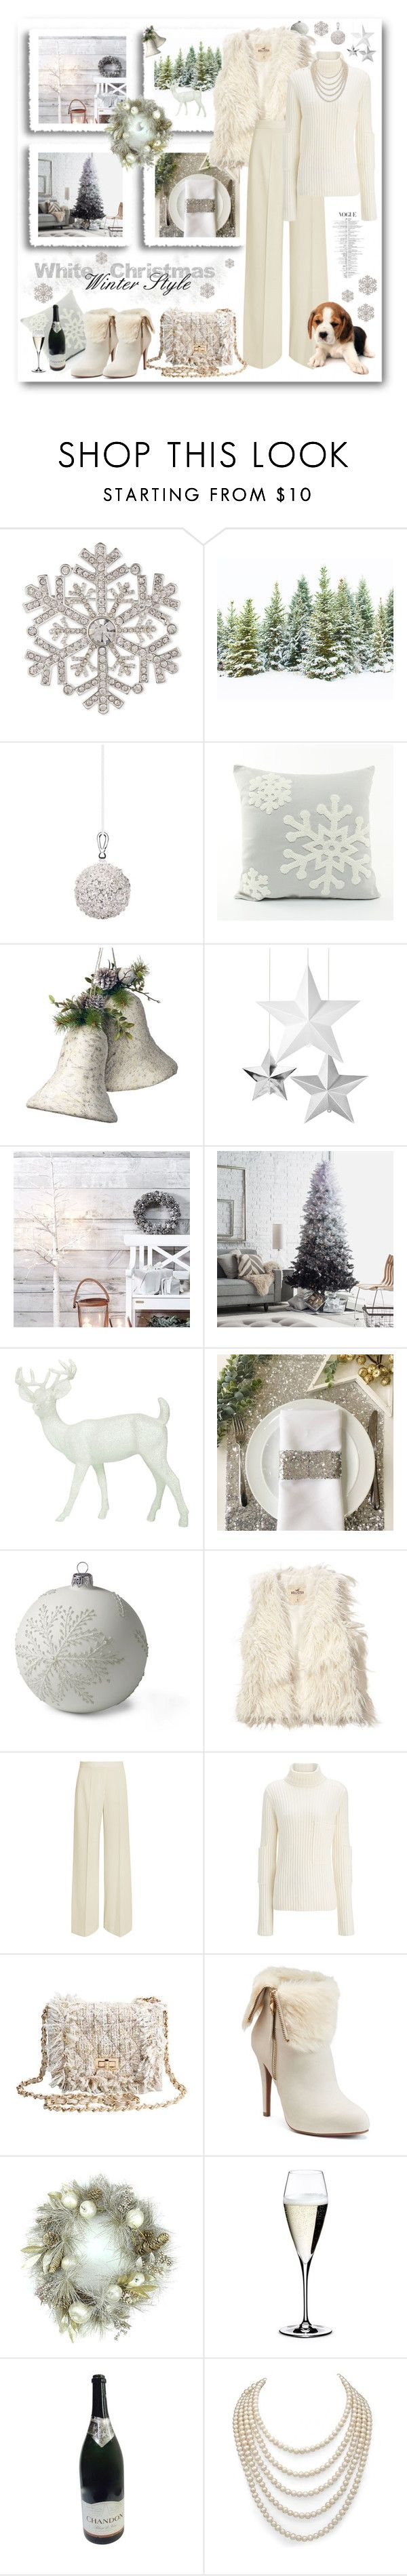 """""""Dreaming of a White Christmas..."""" by pomy22 ❤ liked on Polyvore featuring Anne Klein, Shishi, National Tree Company, Lands' End, Hollister Co., STELLA McCARTNEY, Joseph, Jennifer Lopez, Riedel and DaVonna"""